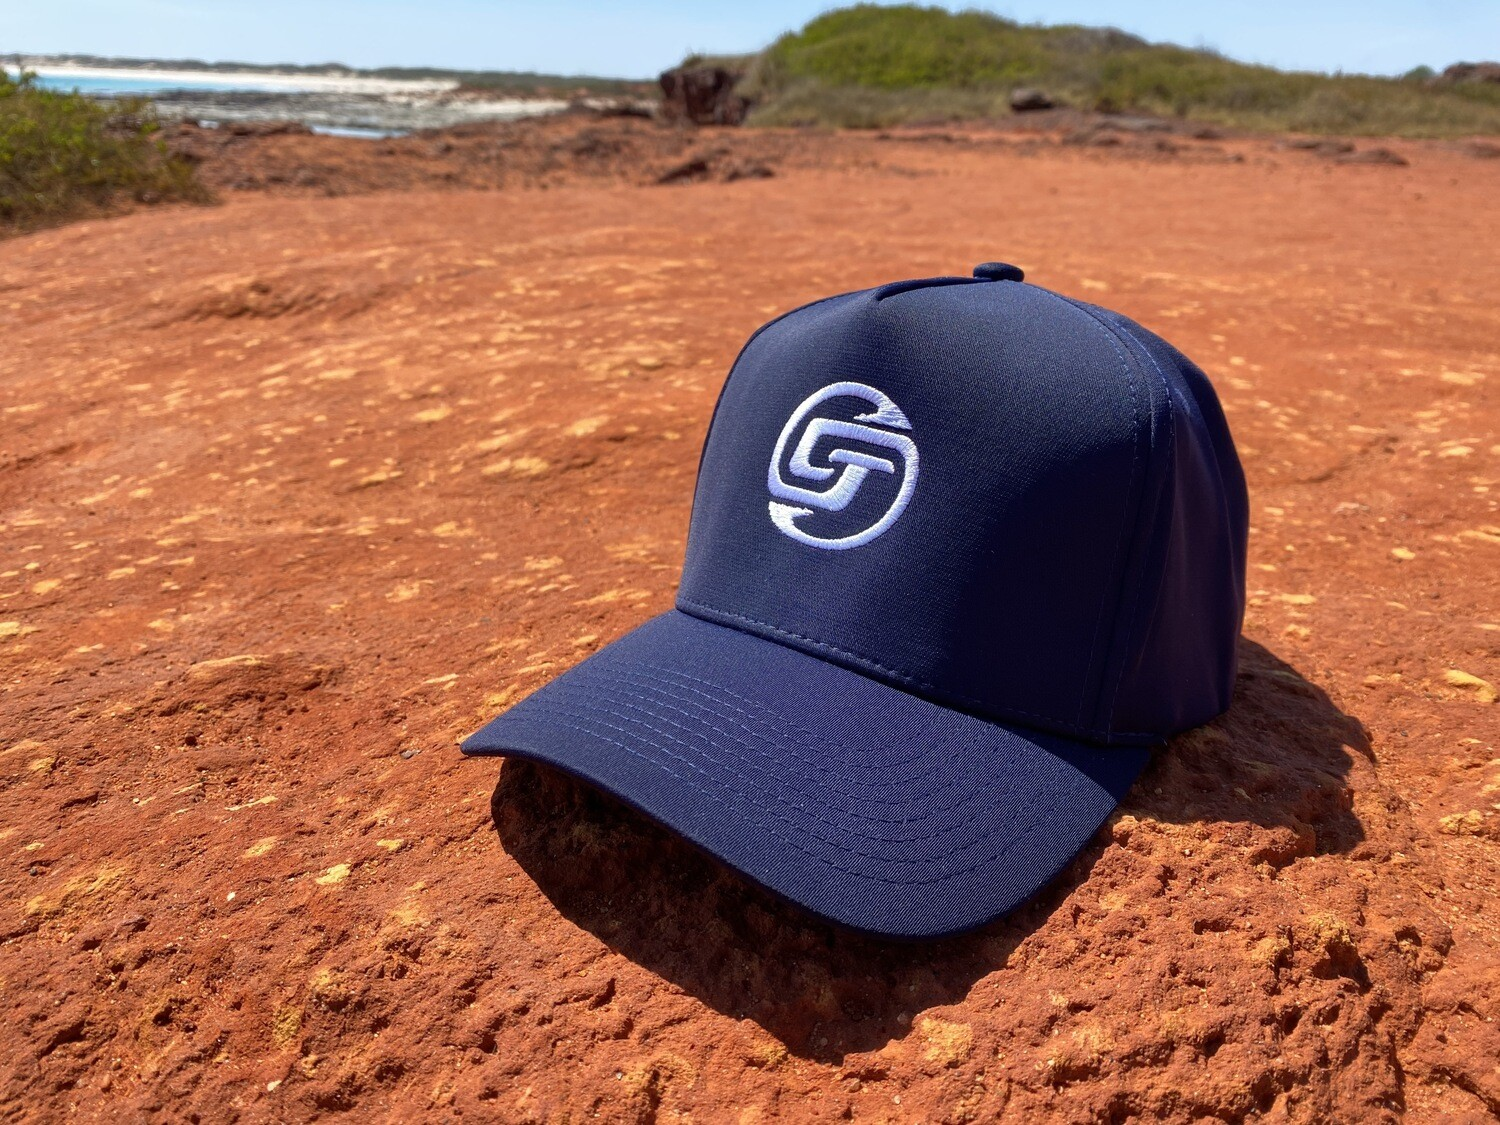 CHASIN TAIL SIGNATURE LOGO D-LUX 5 Panel Trucker Hat. Navy Blue